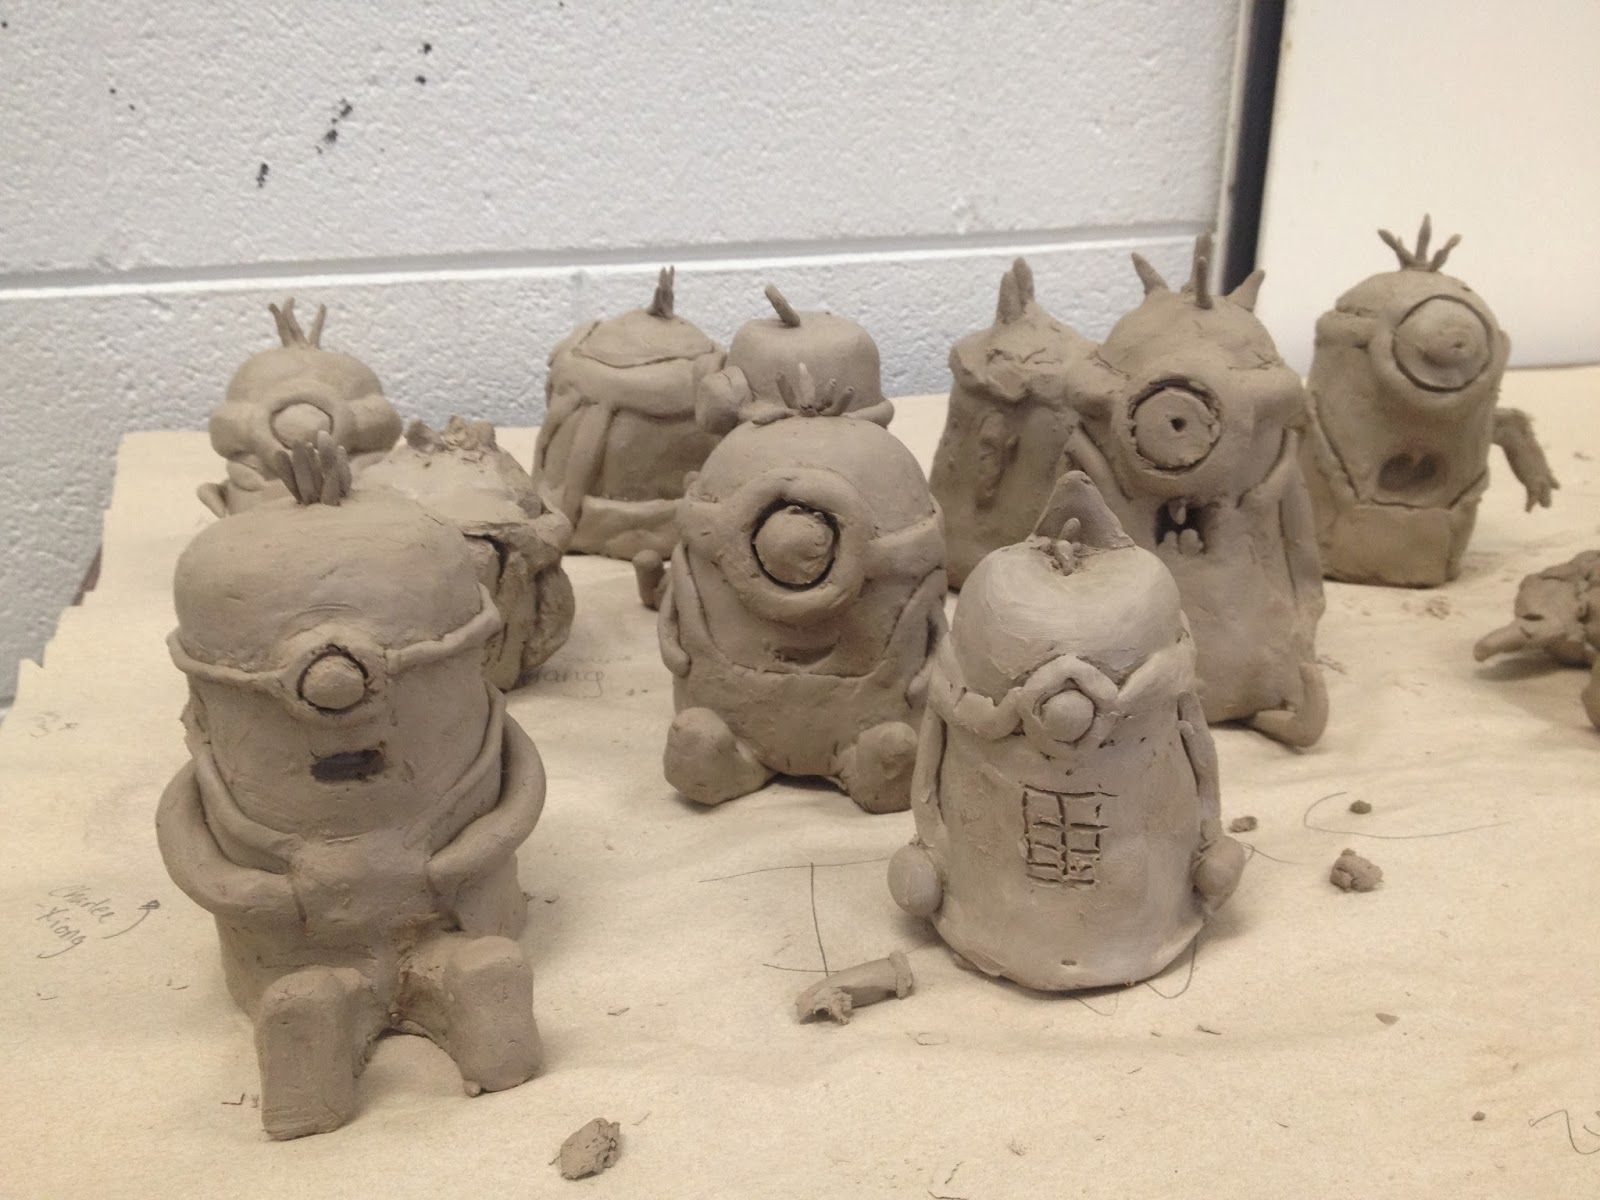 Minions garden gnomes fish and owls middle school clay